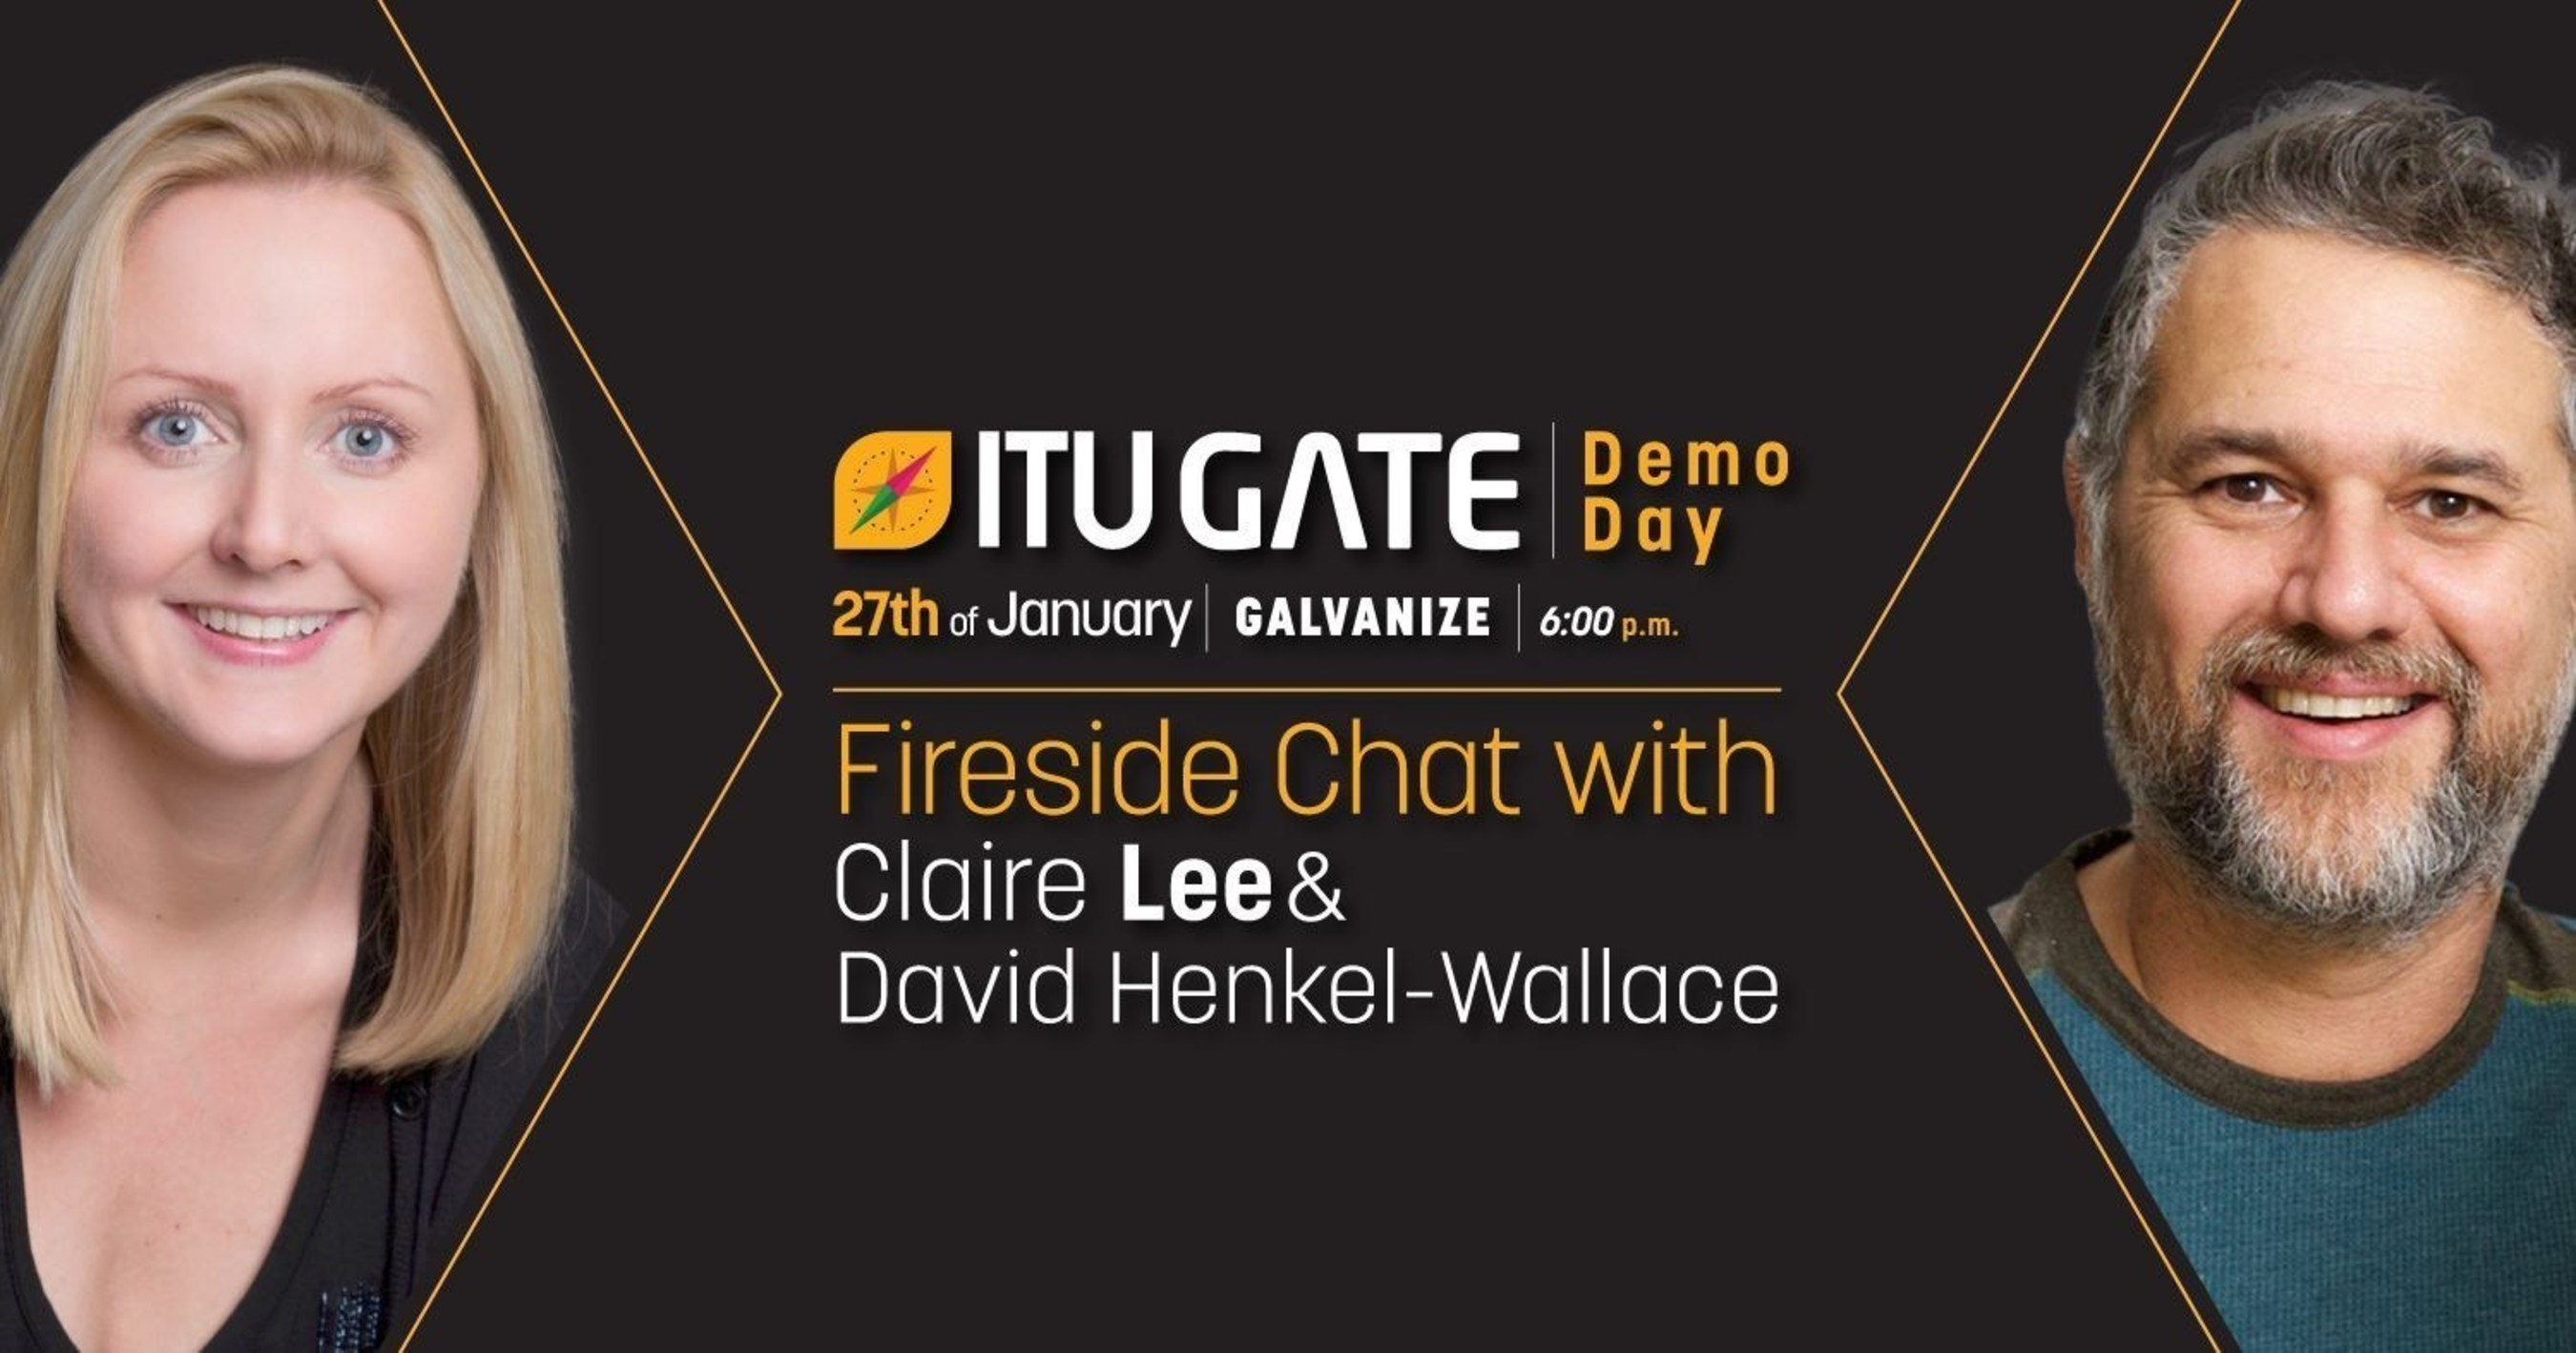 The speakers of the ITU GATE San Francisco Demo Day will be Claire Lee from Silicon Valley Bank and David ...